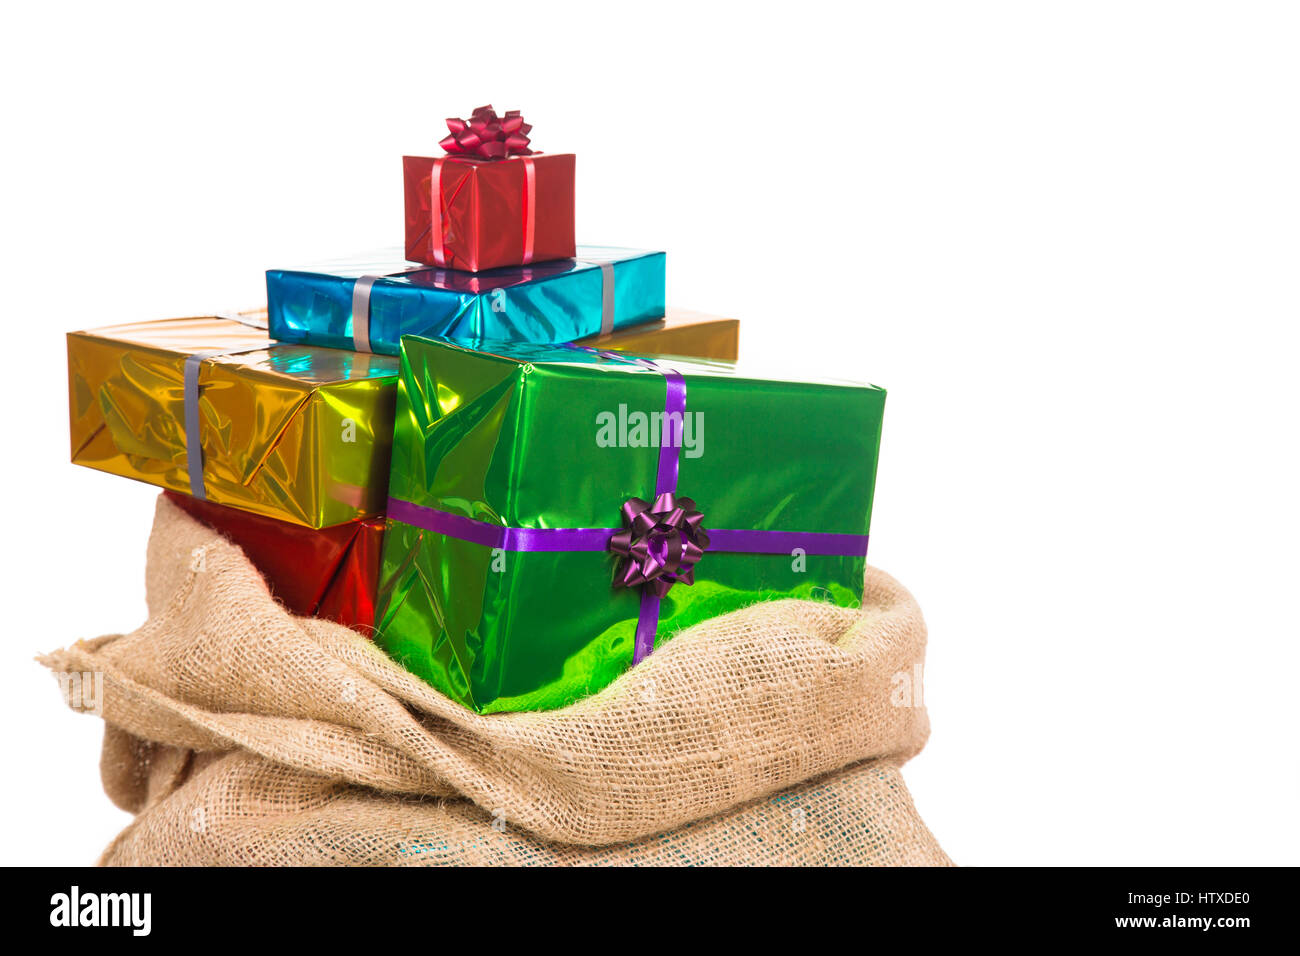 Sack of Sinterklaas with gifts .Isolated on white background. Typical Dutch character part of a traditional event - Stock Image